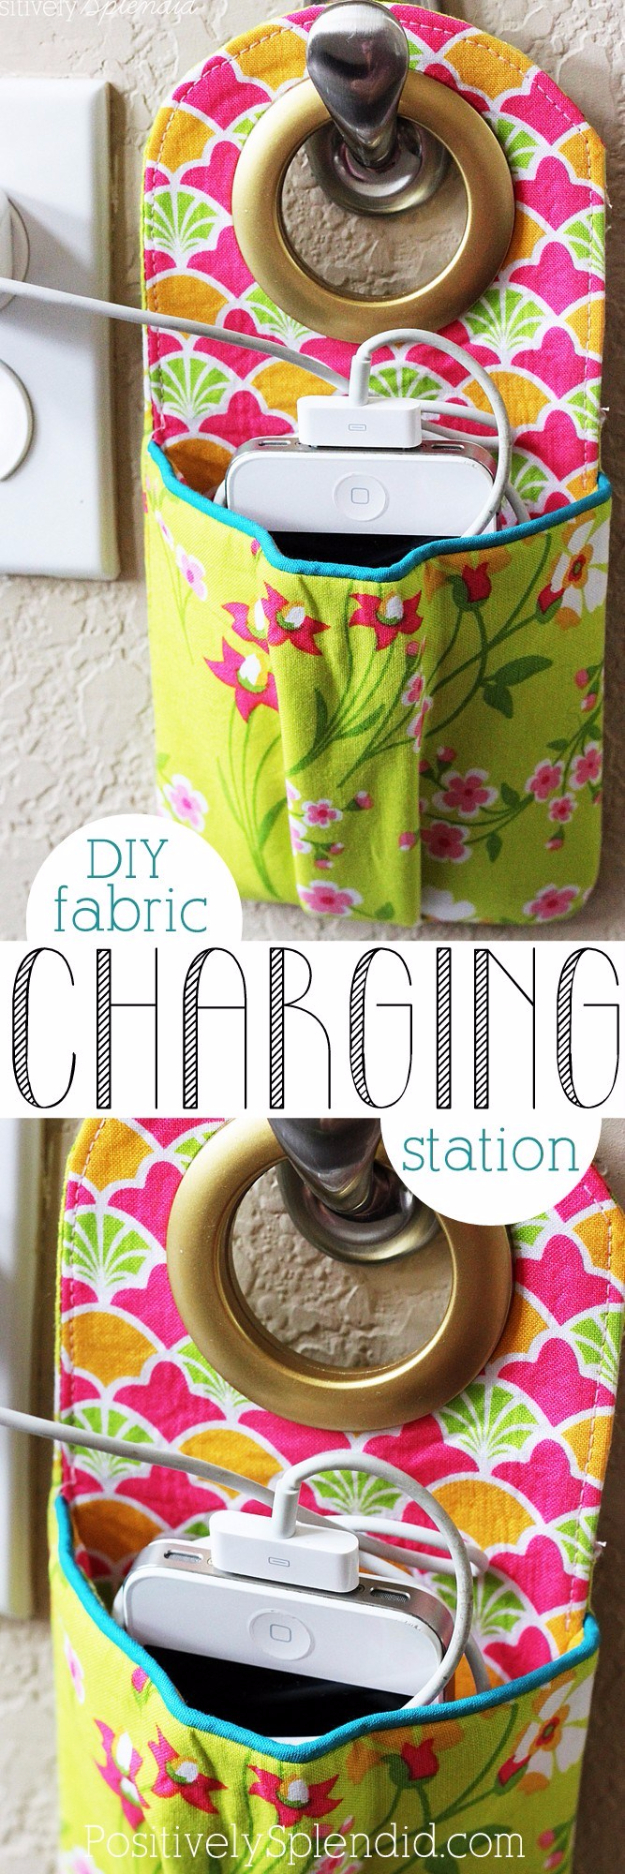 Quick DIY Gifts You Can Sew - DIY Fabric Charging Station - Best Sewing Projects for Gift Giving and Simple Handmade Presents - Free Patterns and Easy Step by Step Tutorials for Home Decor, Baby, Women, Kids, Men, Girls http://diyjoy.com/quick-diy-gifts-sew